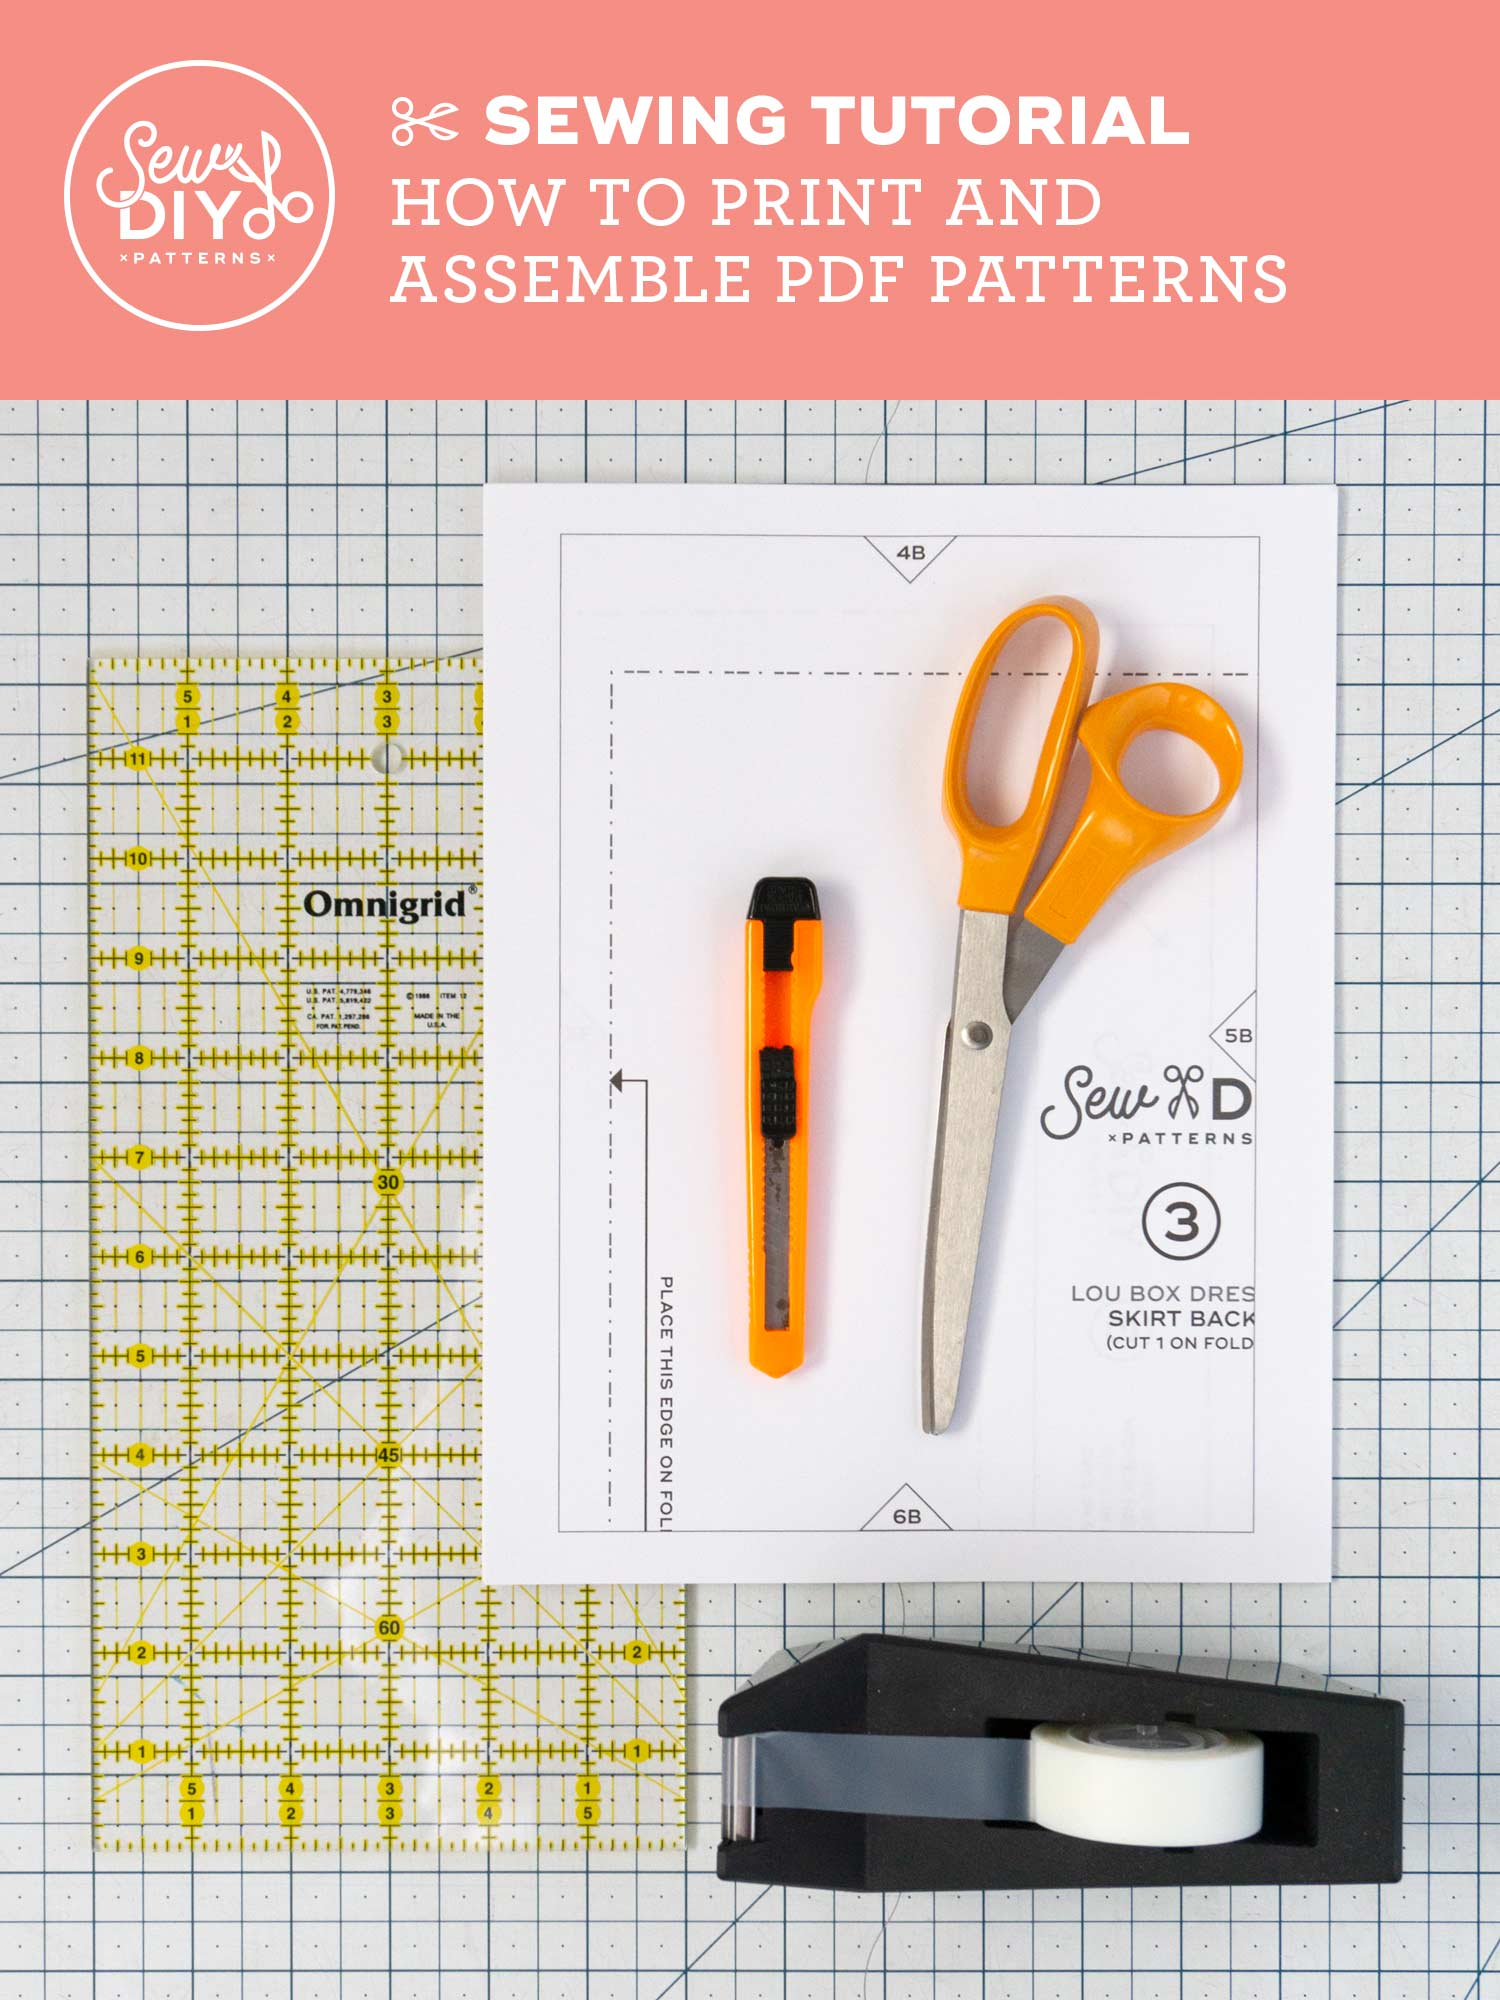 Learn how to print and assemble PDF sewing patterns in this video from Sew DIY